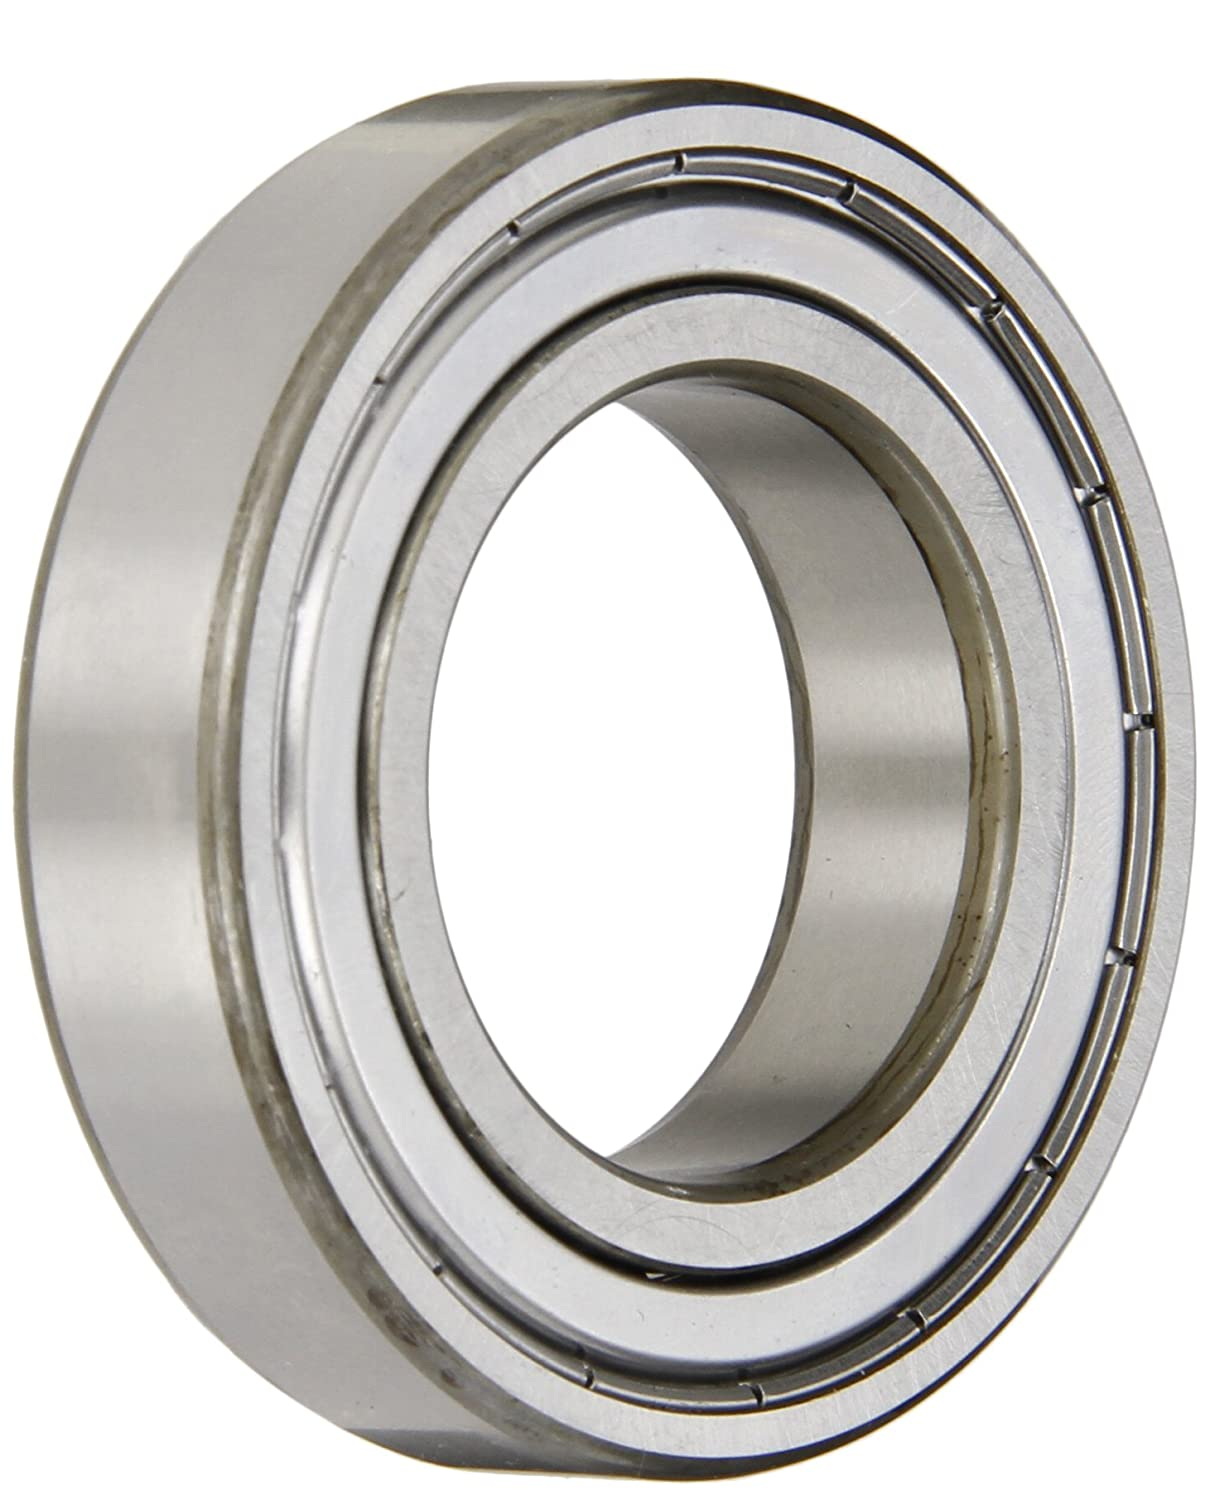 SKF 6007-Z Deep Groove Ball Bearing, Single Shield, Standard Cage, Normal Clearance, 35mm Bore,  62mm OD, 14mm Width